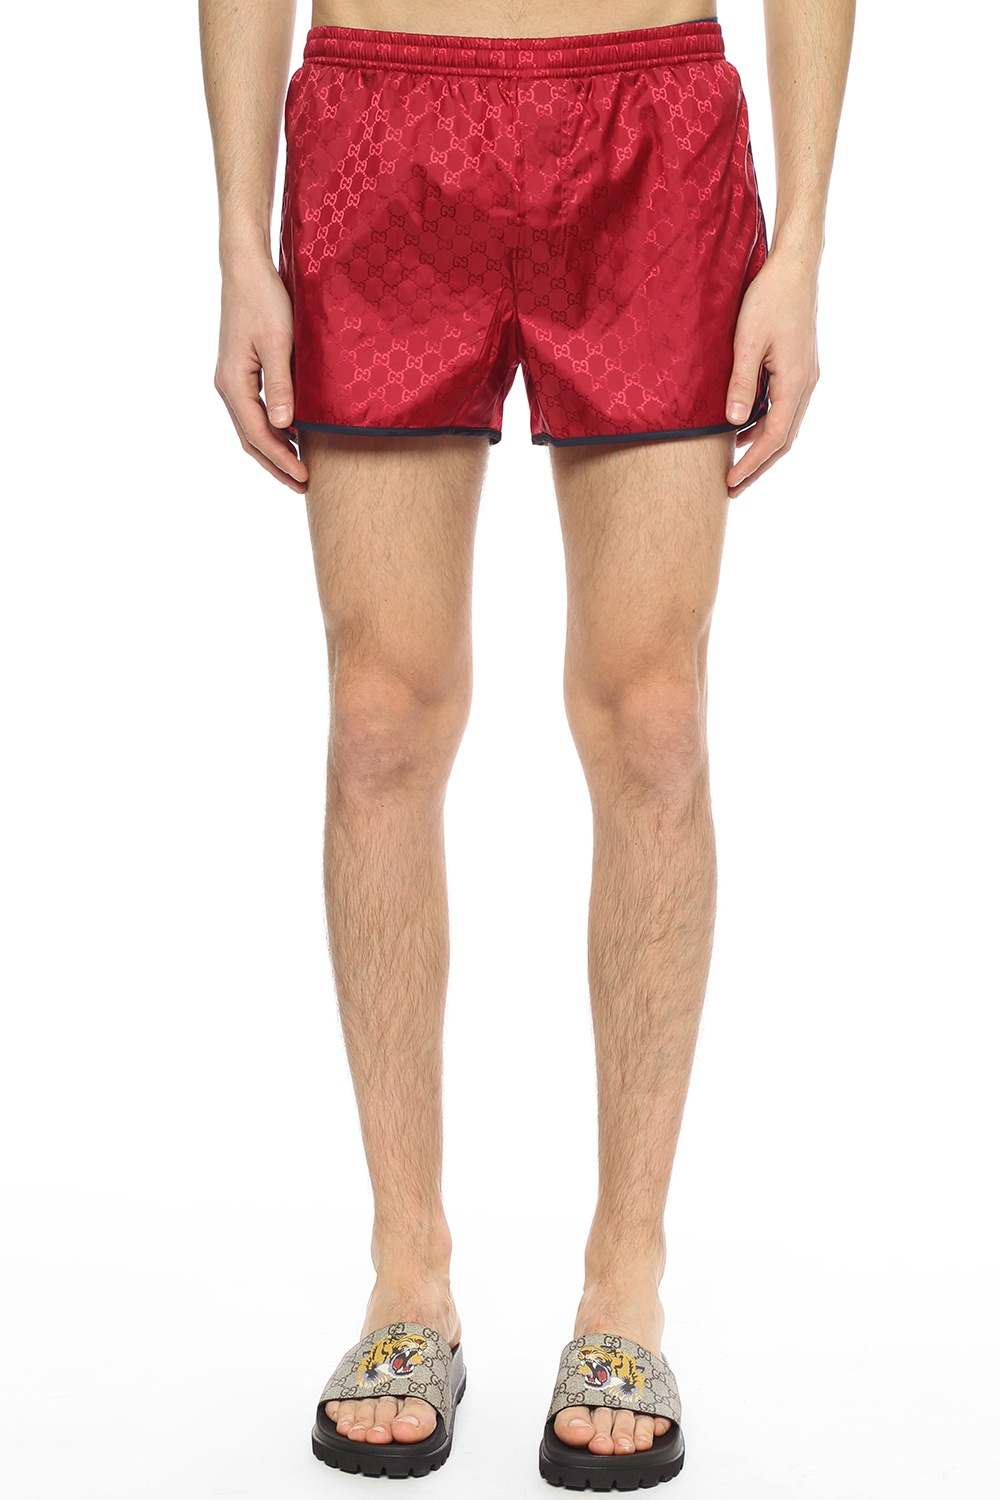 Gucci Bee-patched swim shorts